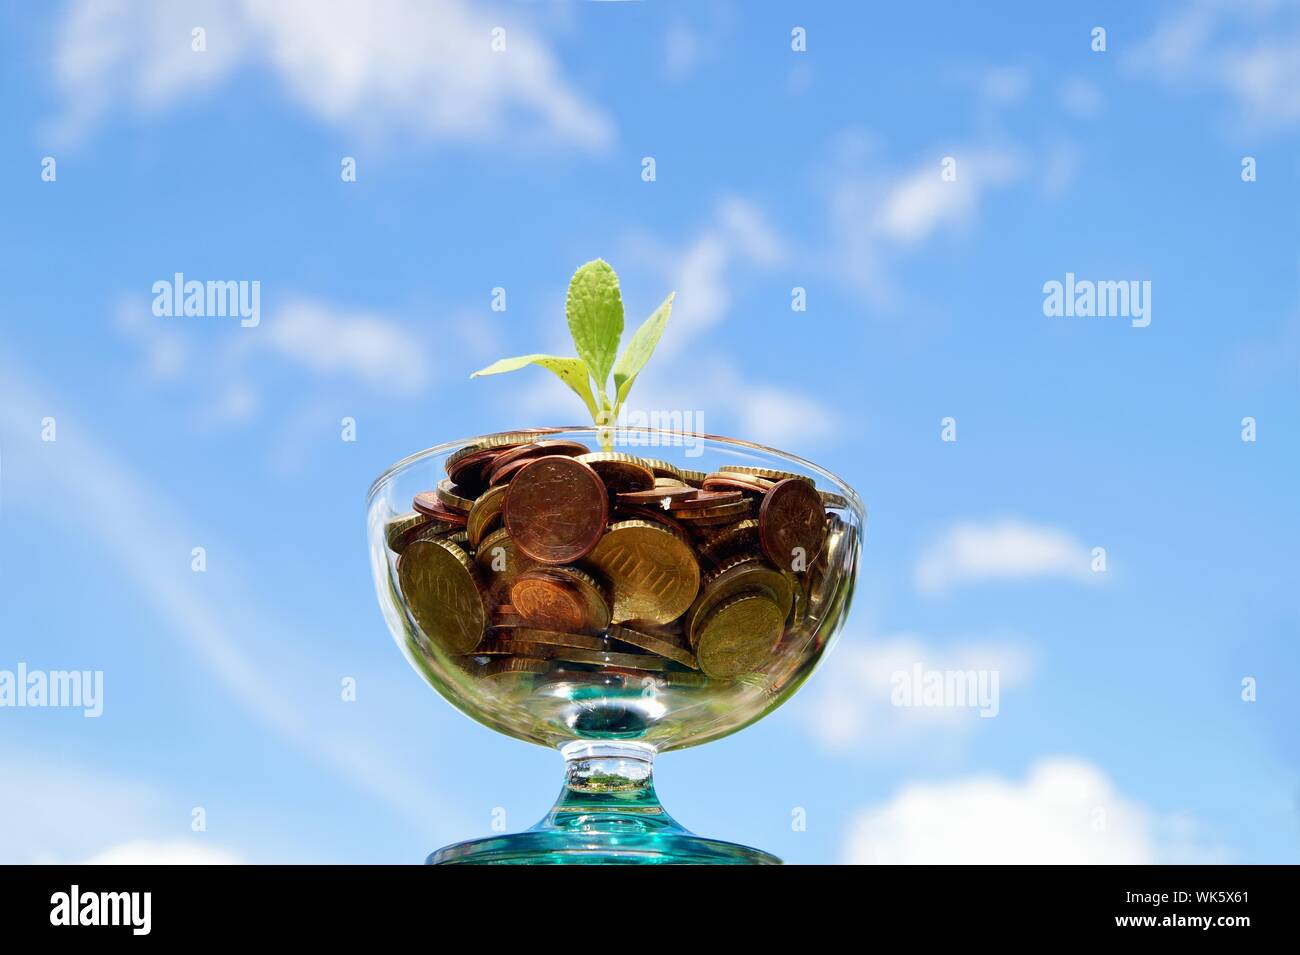 plant growing out of pile of euro coins on the sky background. plant growing from coin jar. Investing to green business. Investment and saving concept Stock Photo